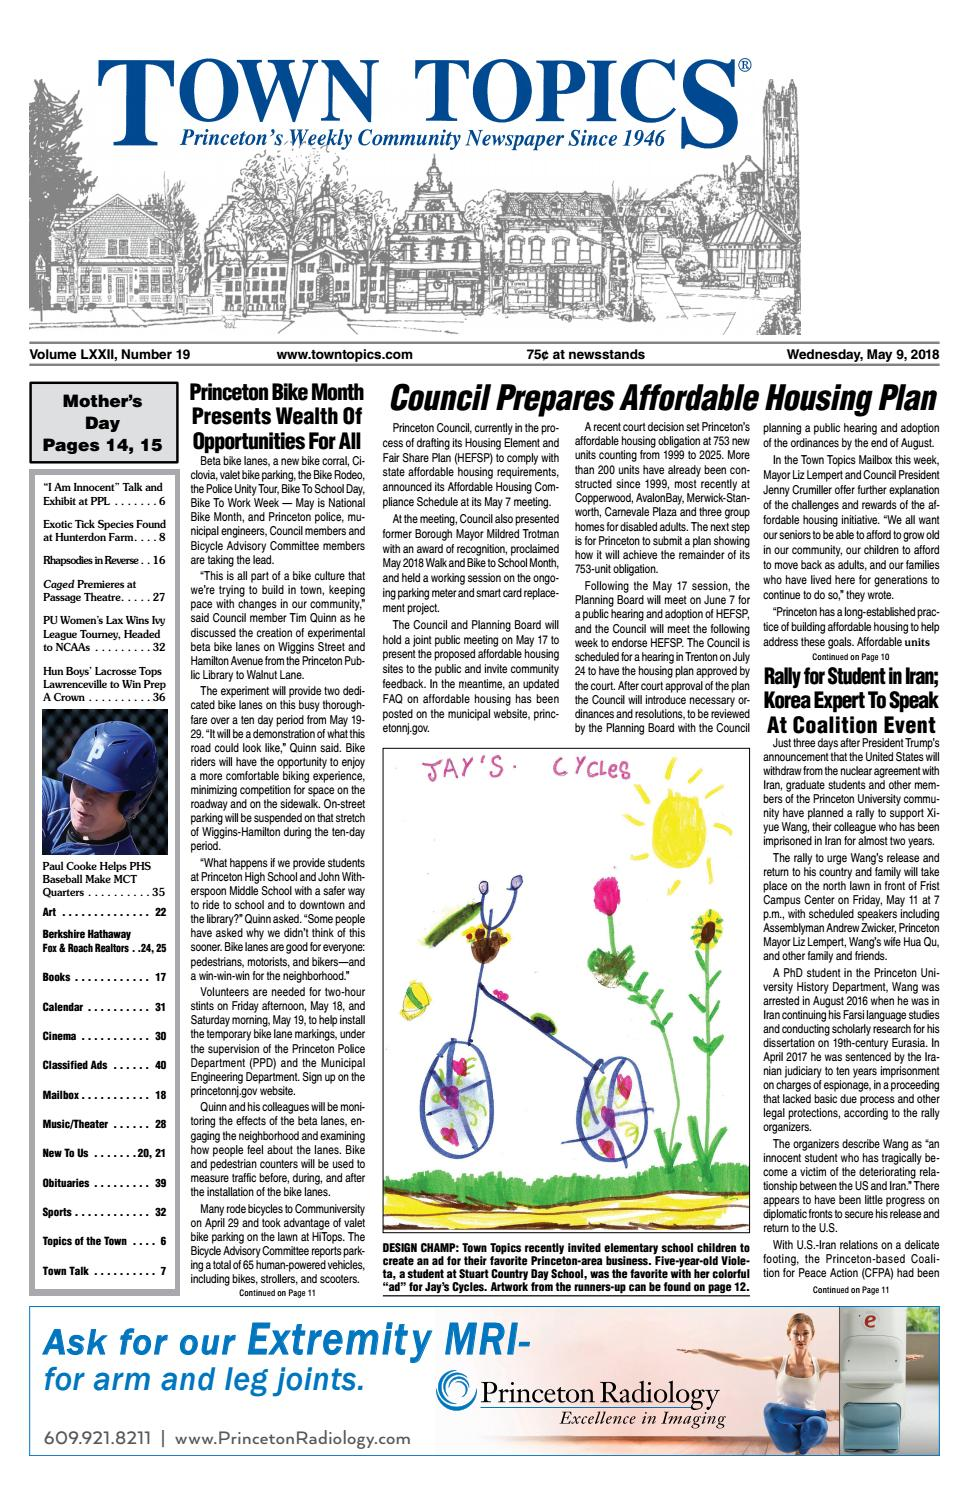 Town Topics Newspaper May 9 2018 By Witherspoon Media Group Issuu Cd Writer 8211 How The Burner Works